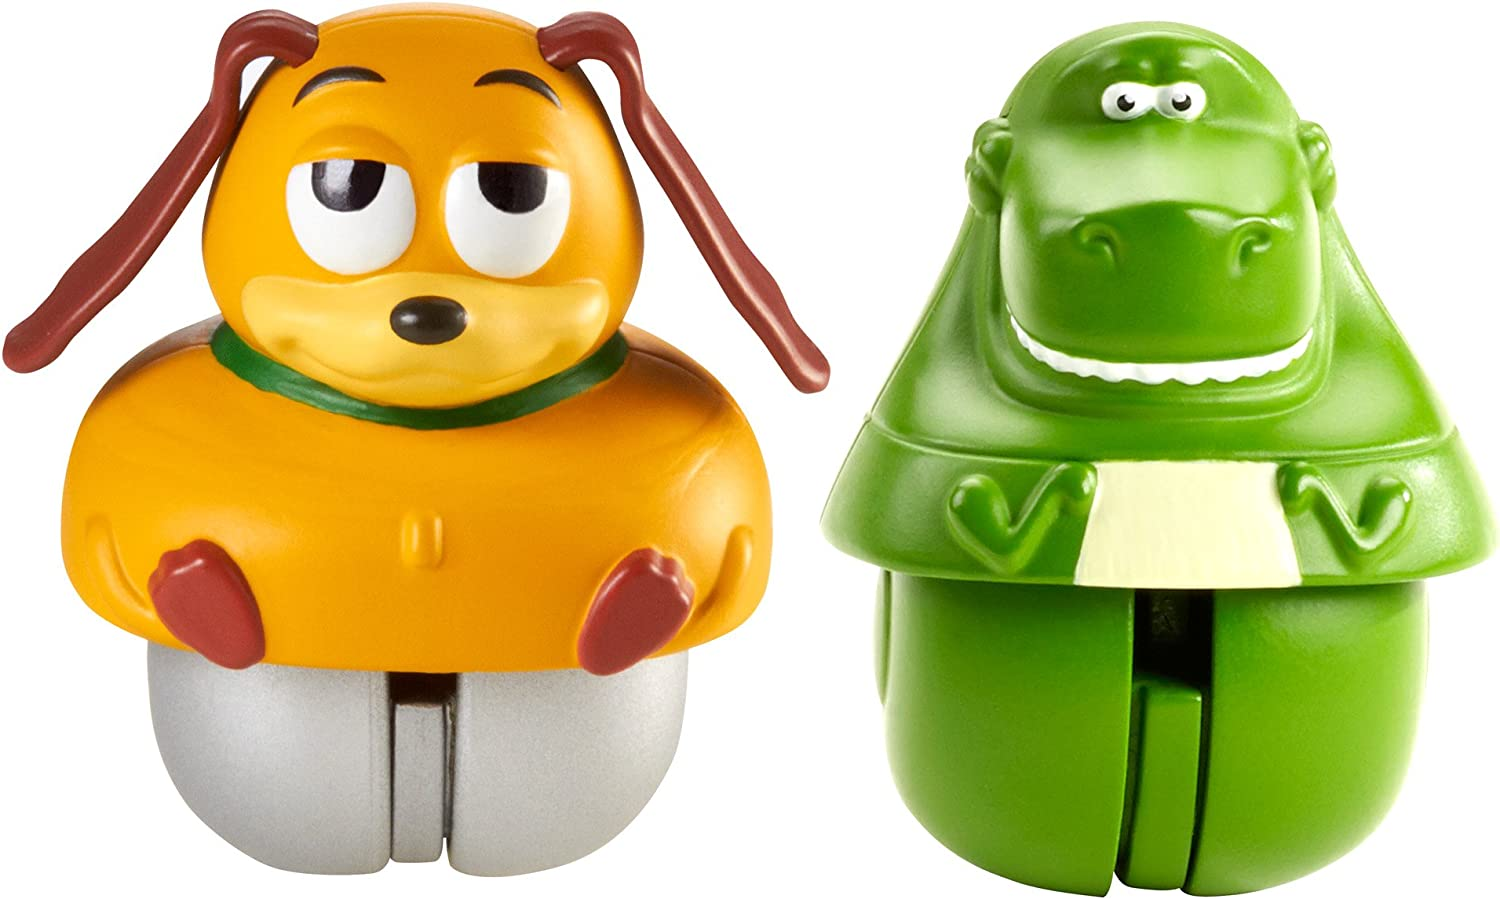 descuento online Juguete Story Story Story Zing Ems Rex and Slinky Dog by Mattel  envío gratuito a nivel mundial